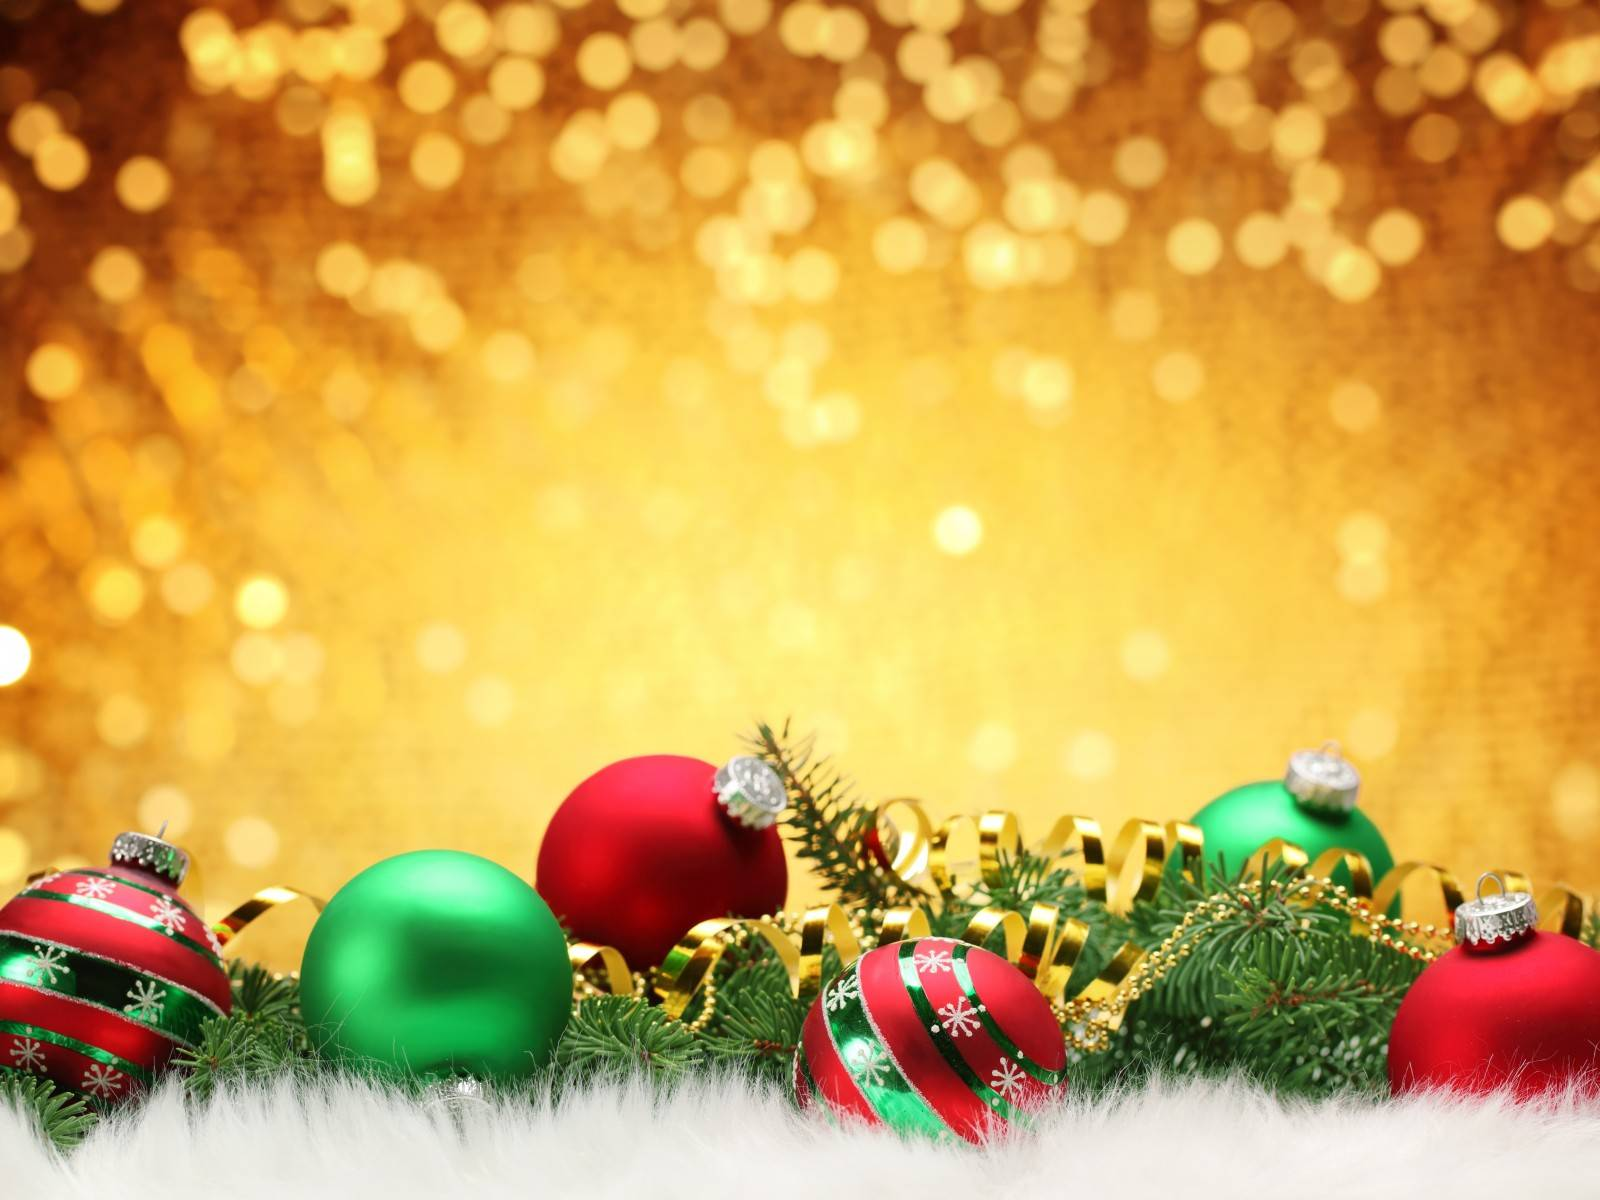 Christmas Backgrounds Wallpapers Group (86+)